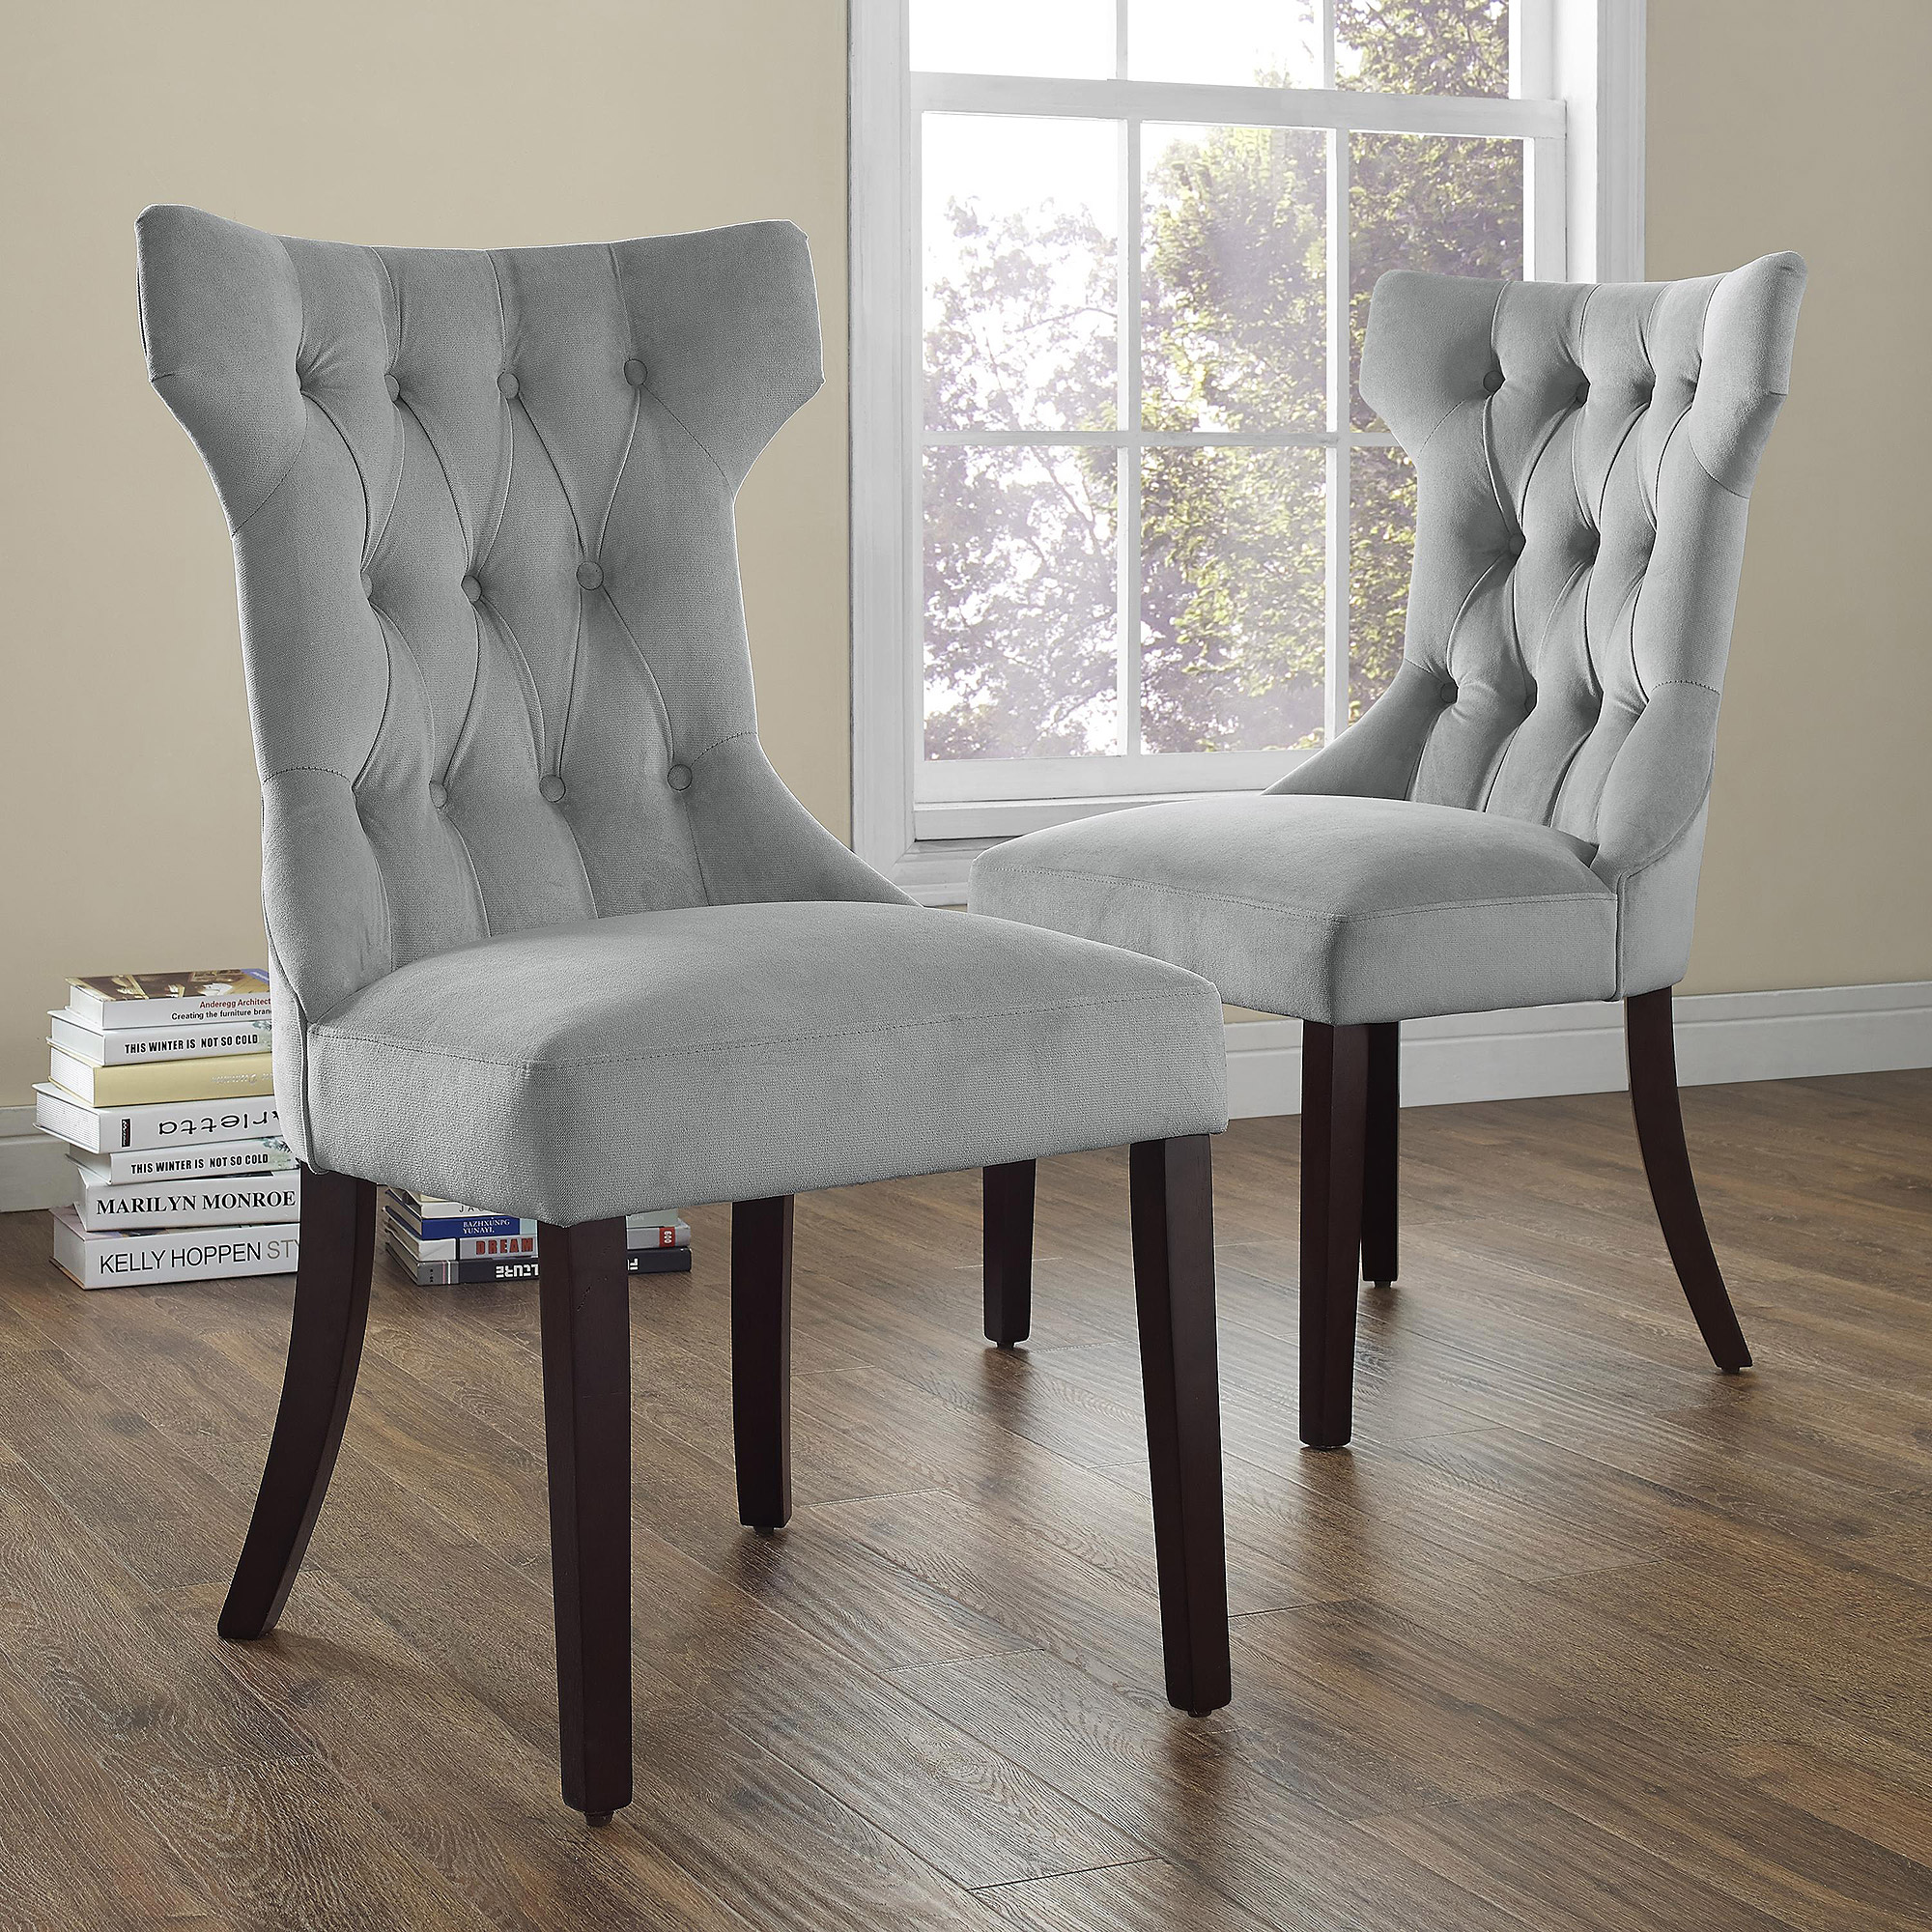 dorel living clairborne tufted upholestered dining chair set ave six piece fabric and accent table narrow hall cupboard geometric lamp solid wood side tables wide mirror large